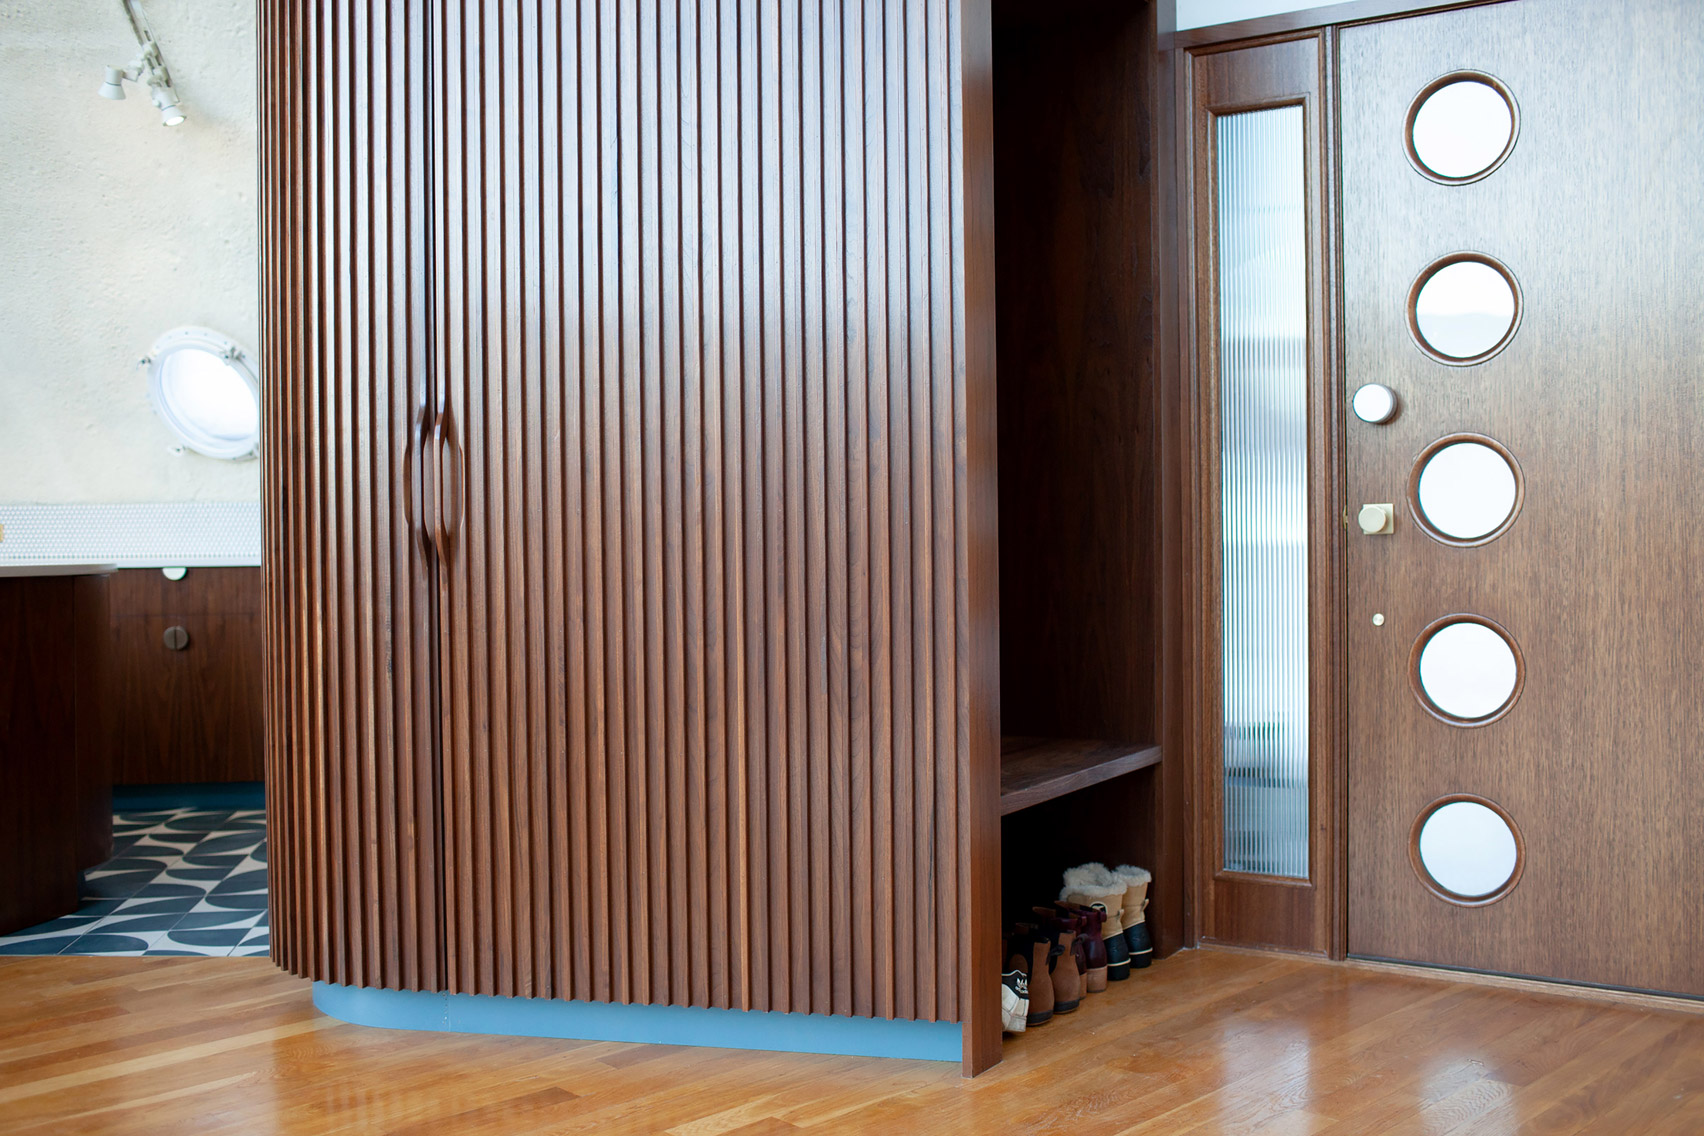 Entryway of Shell House renovated by DAAM